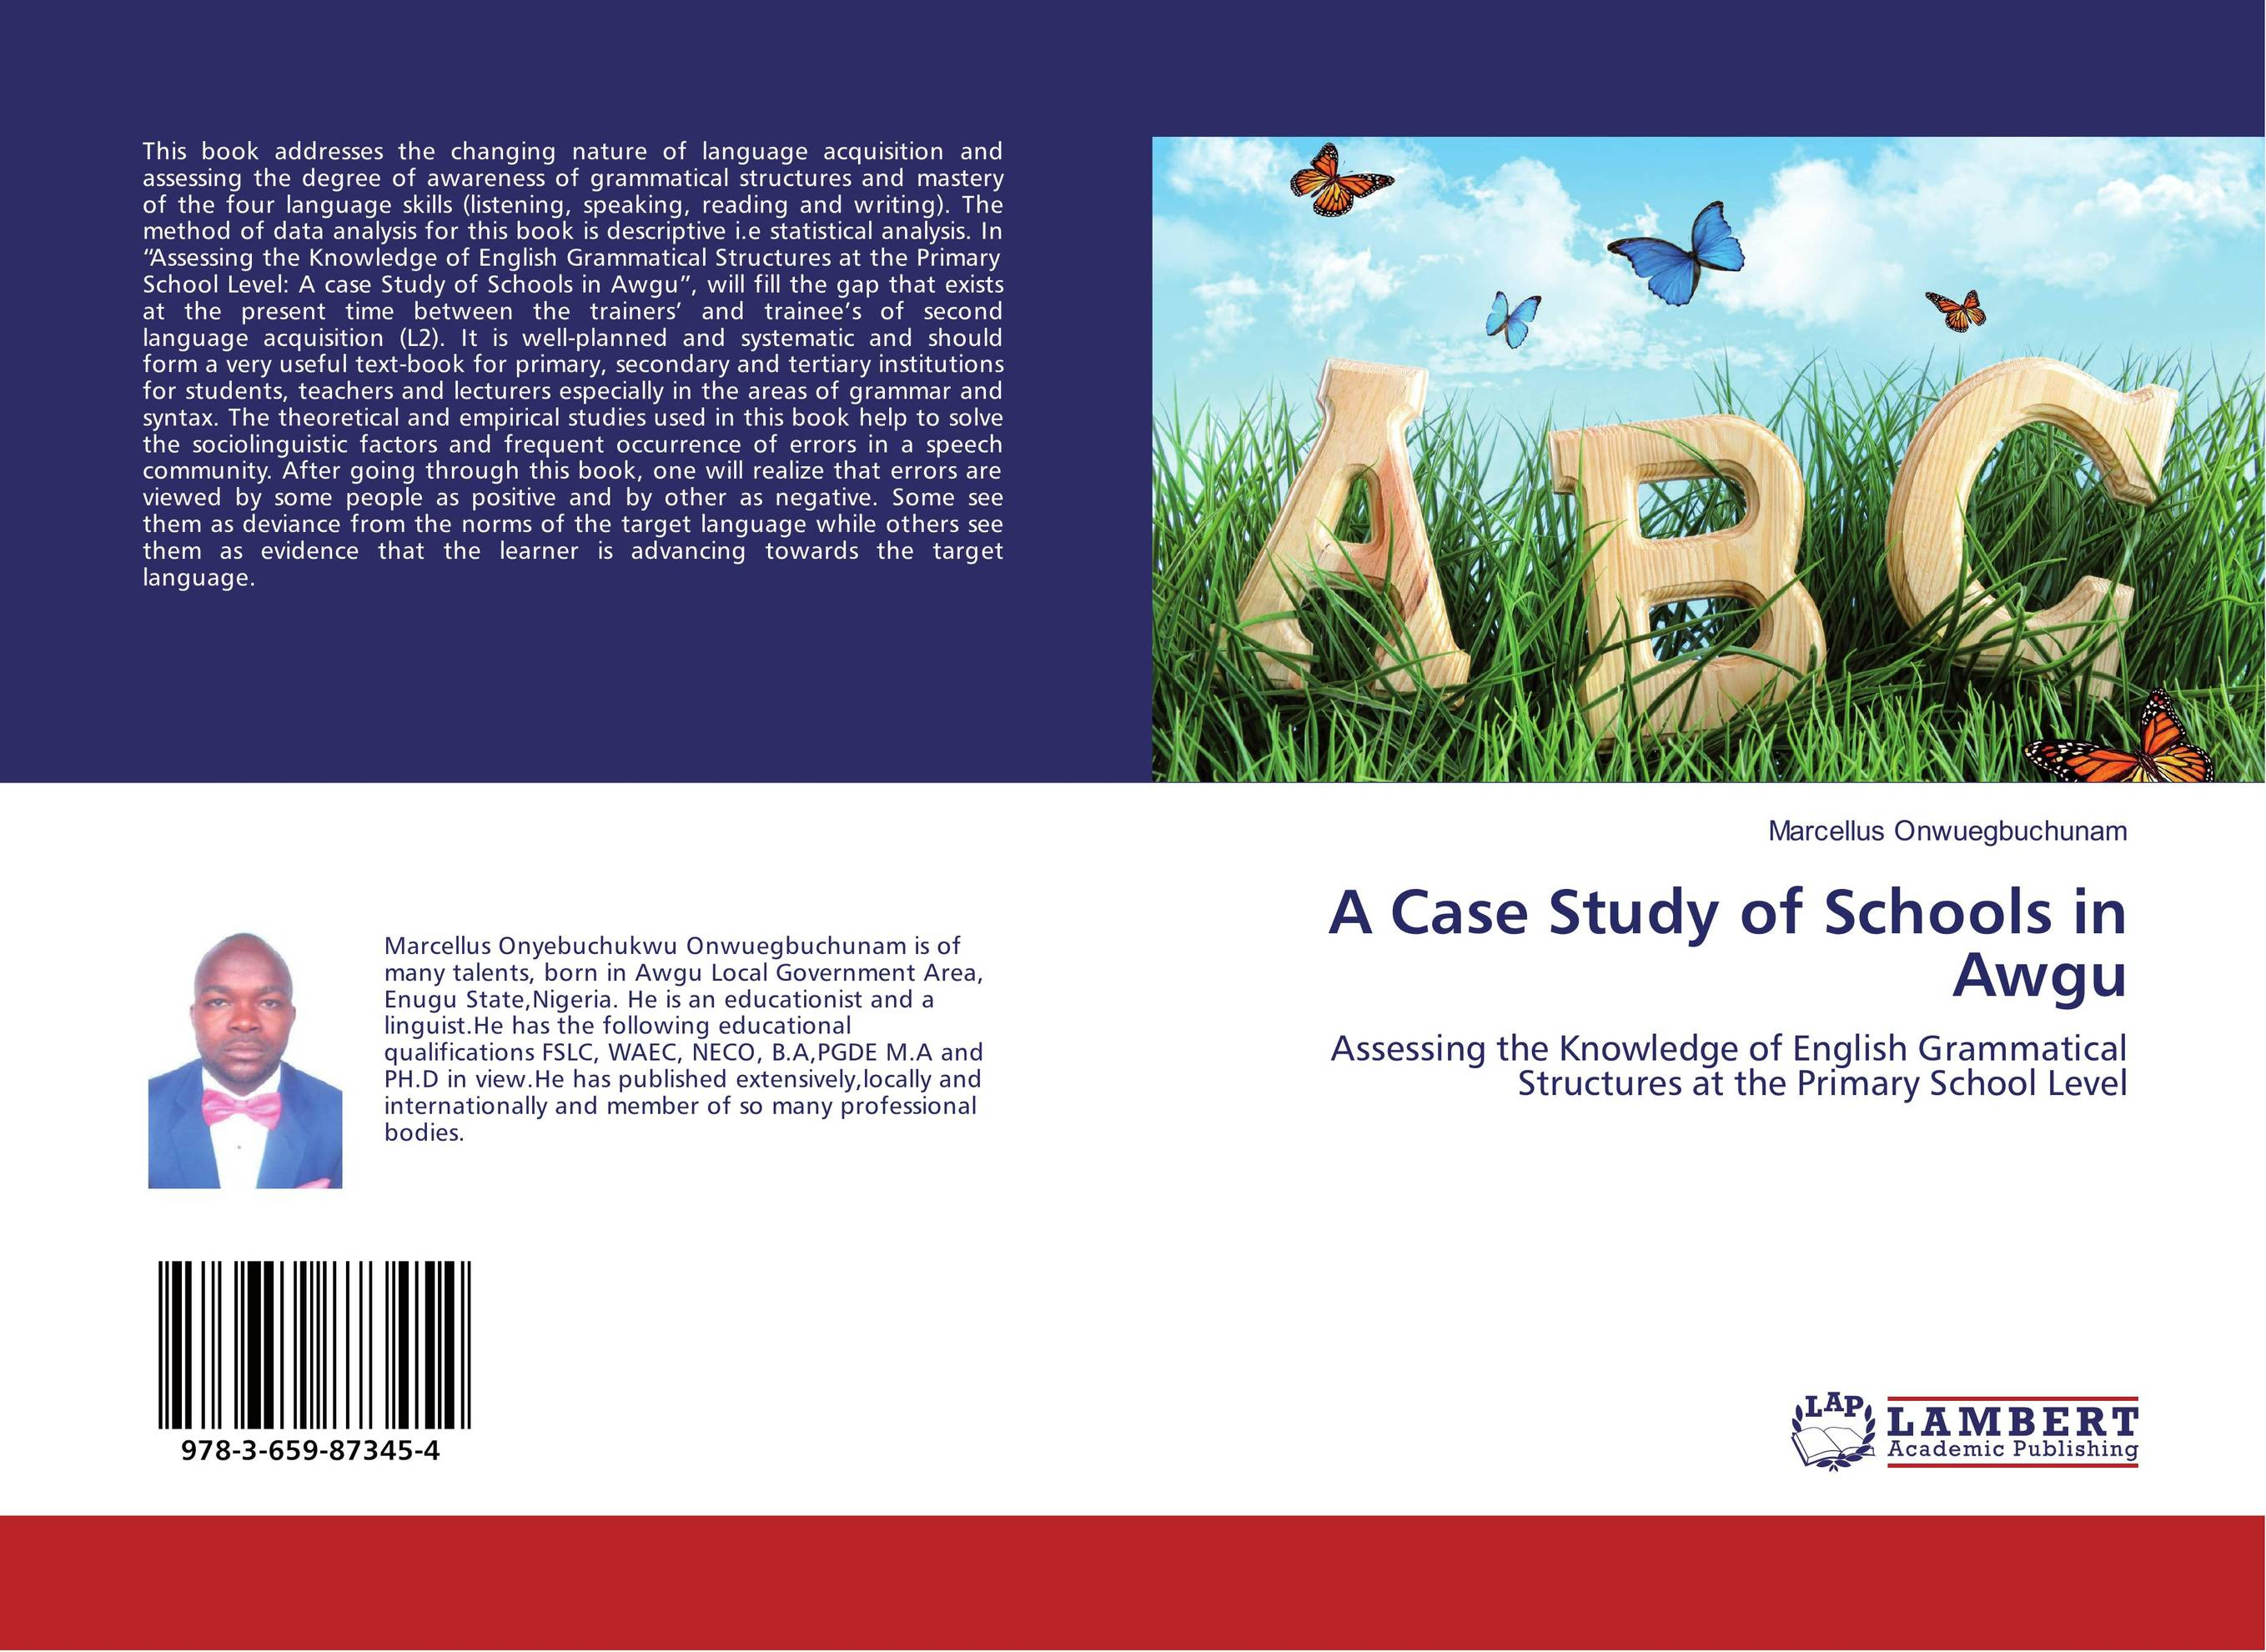 A Case Study of Schools in Awgu a stylistic study of the language of selected greeting cards